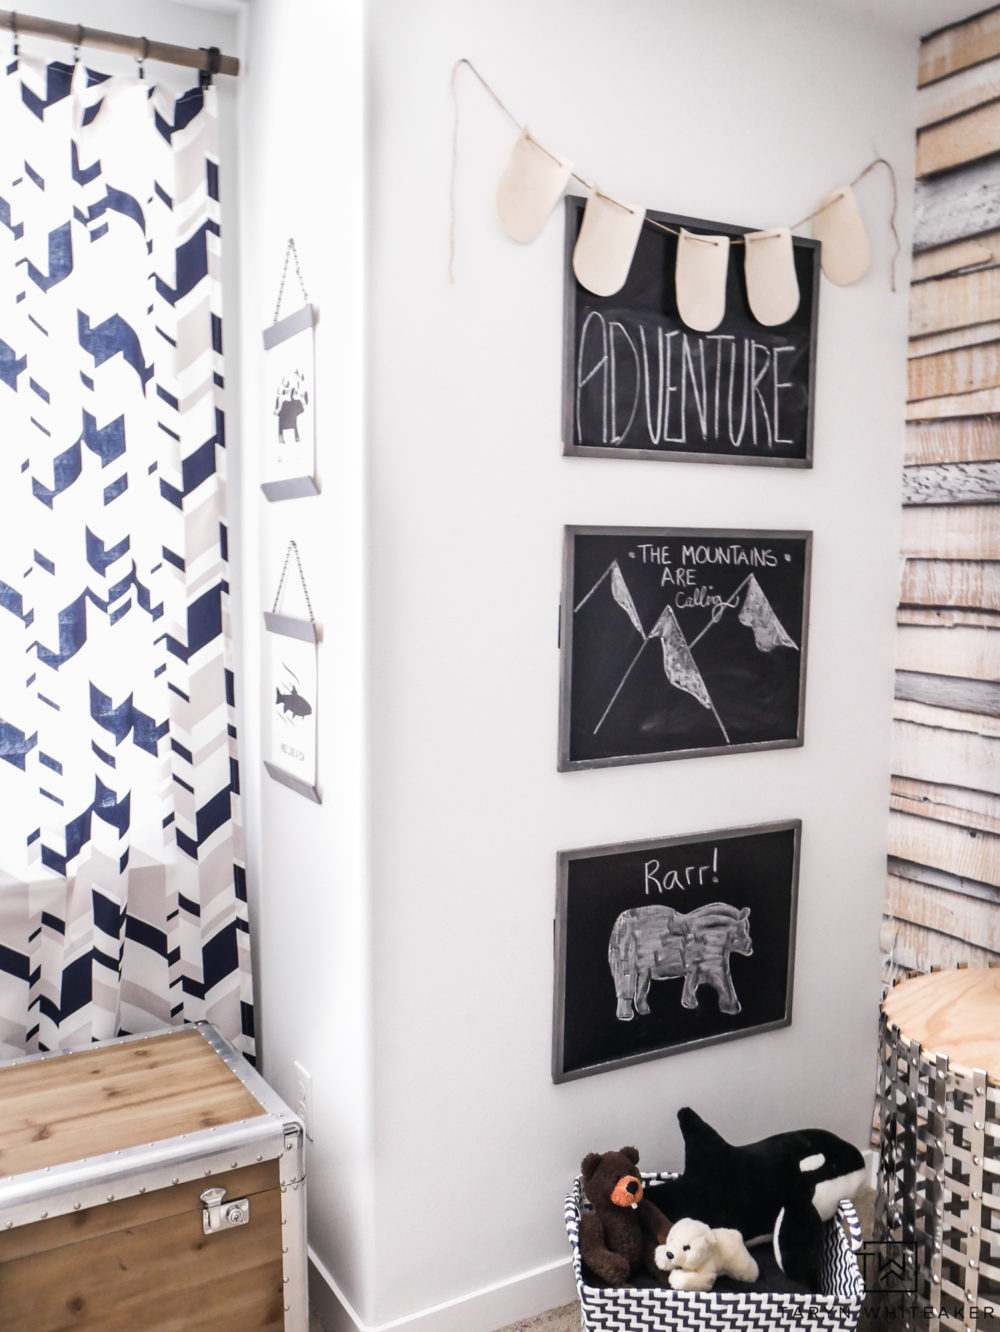 Create your own chalkboard station in a kids' room by putting up three separate chalkboards to create an art gallery.